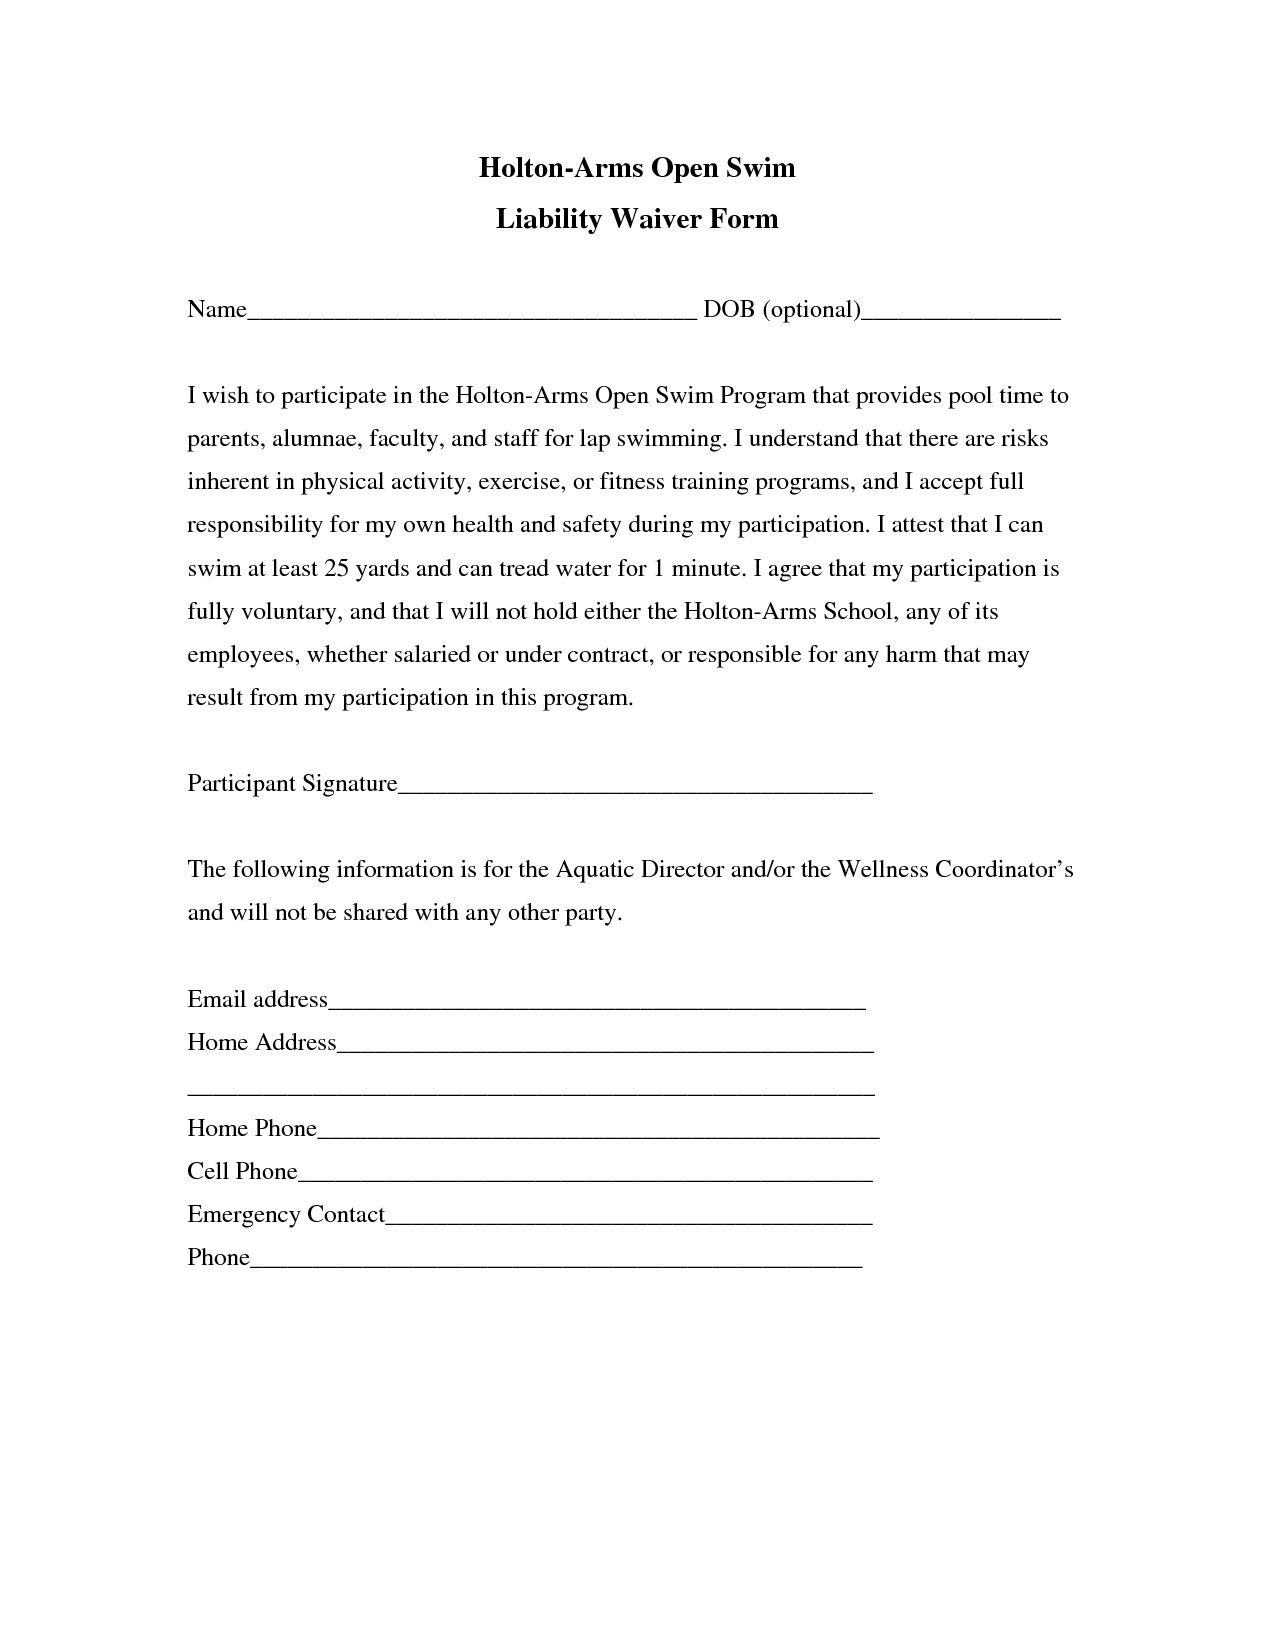 General Liability Waiver Form Template Lovely Liability Insurance